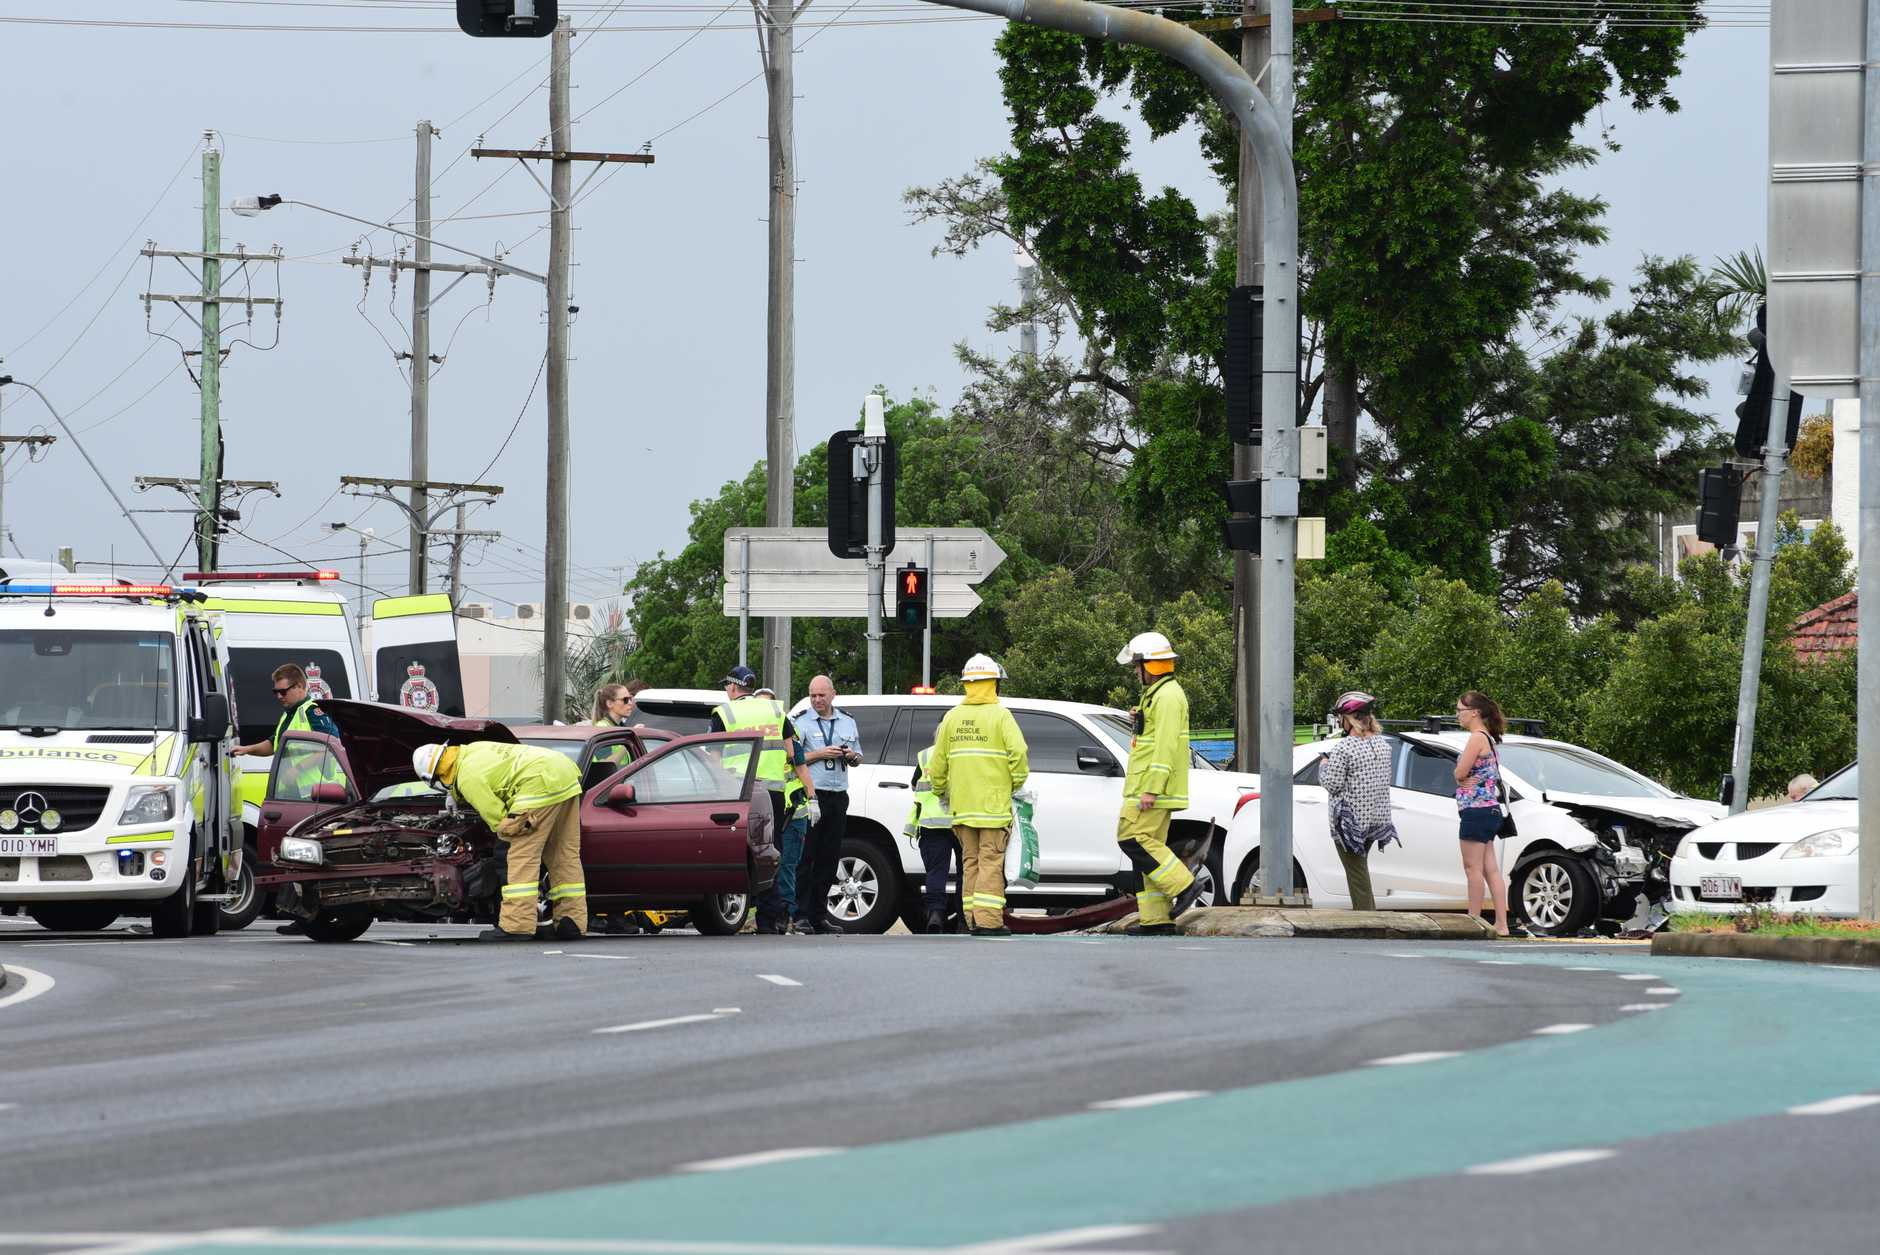 Crews tend to the scene of the smash on Bourbong St.